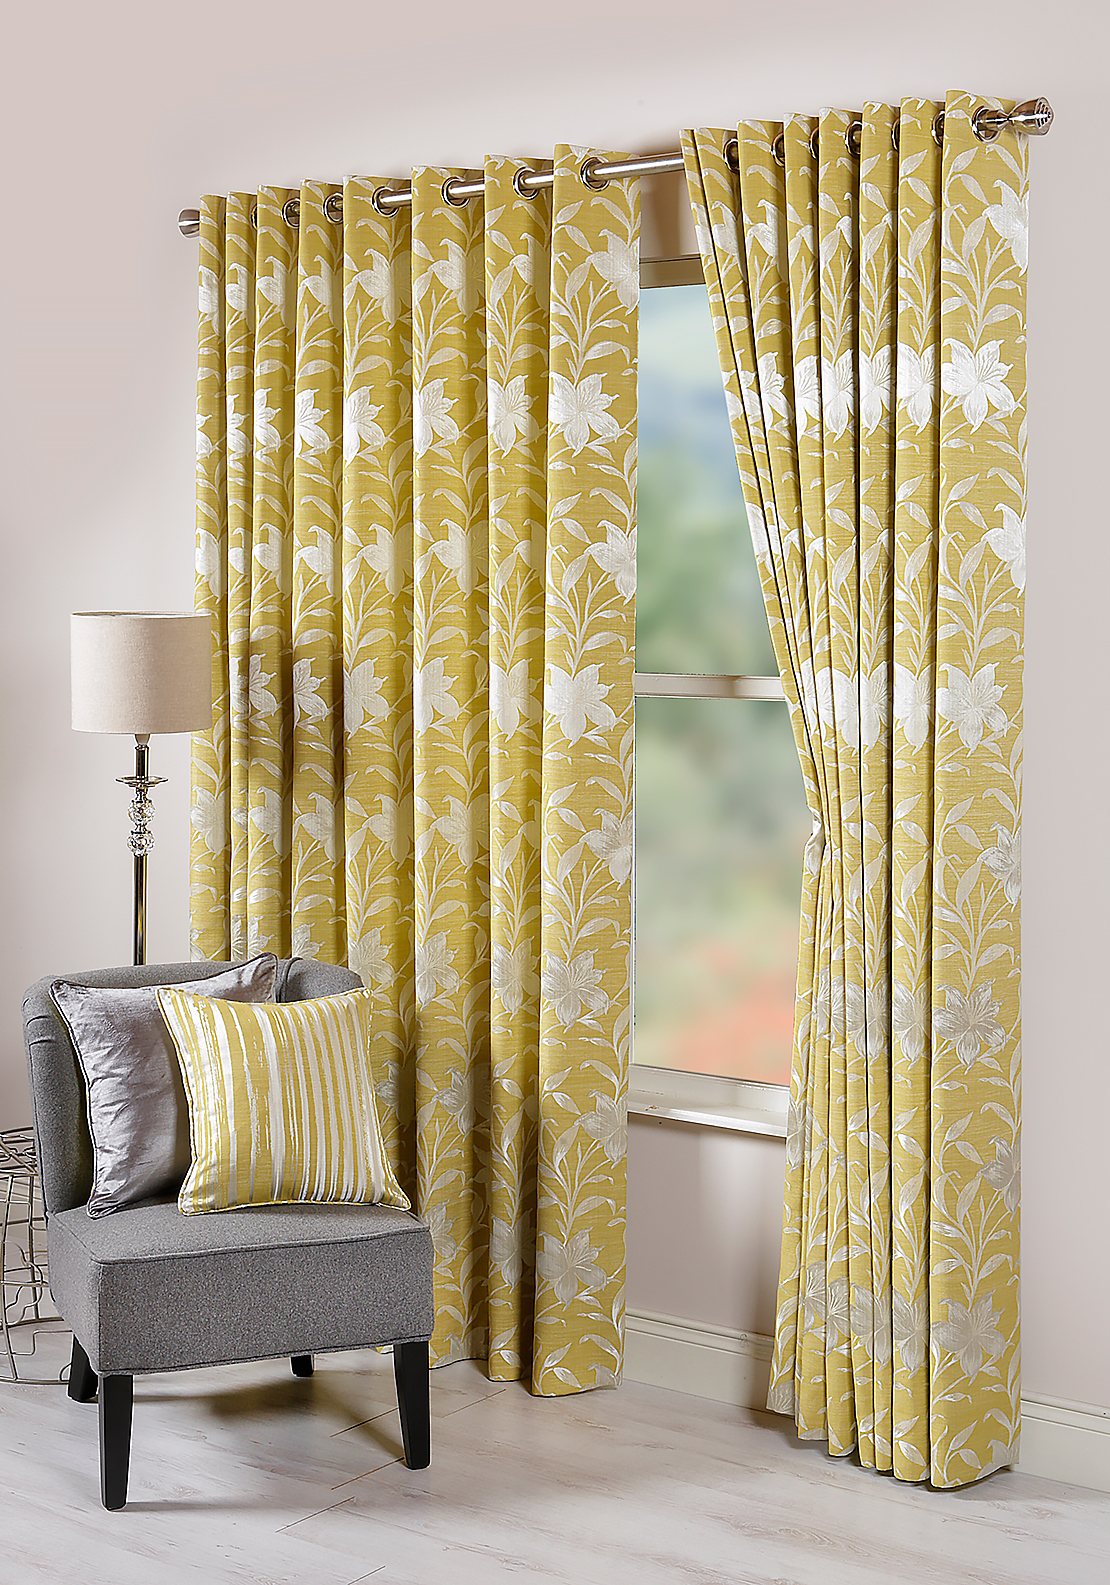 Scatterbox Nicola Floral Print Fully Lined Eyelet Curtains, Yellow 110cm x 90cm